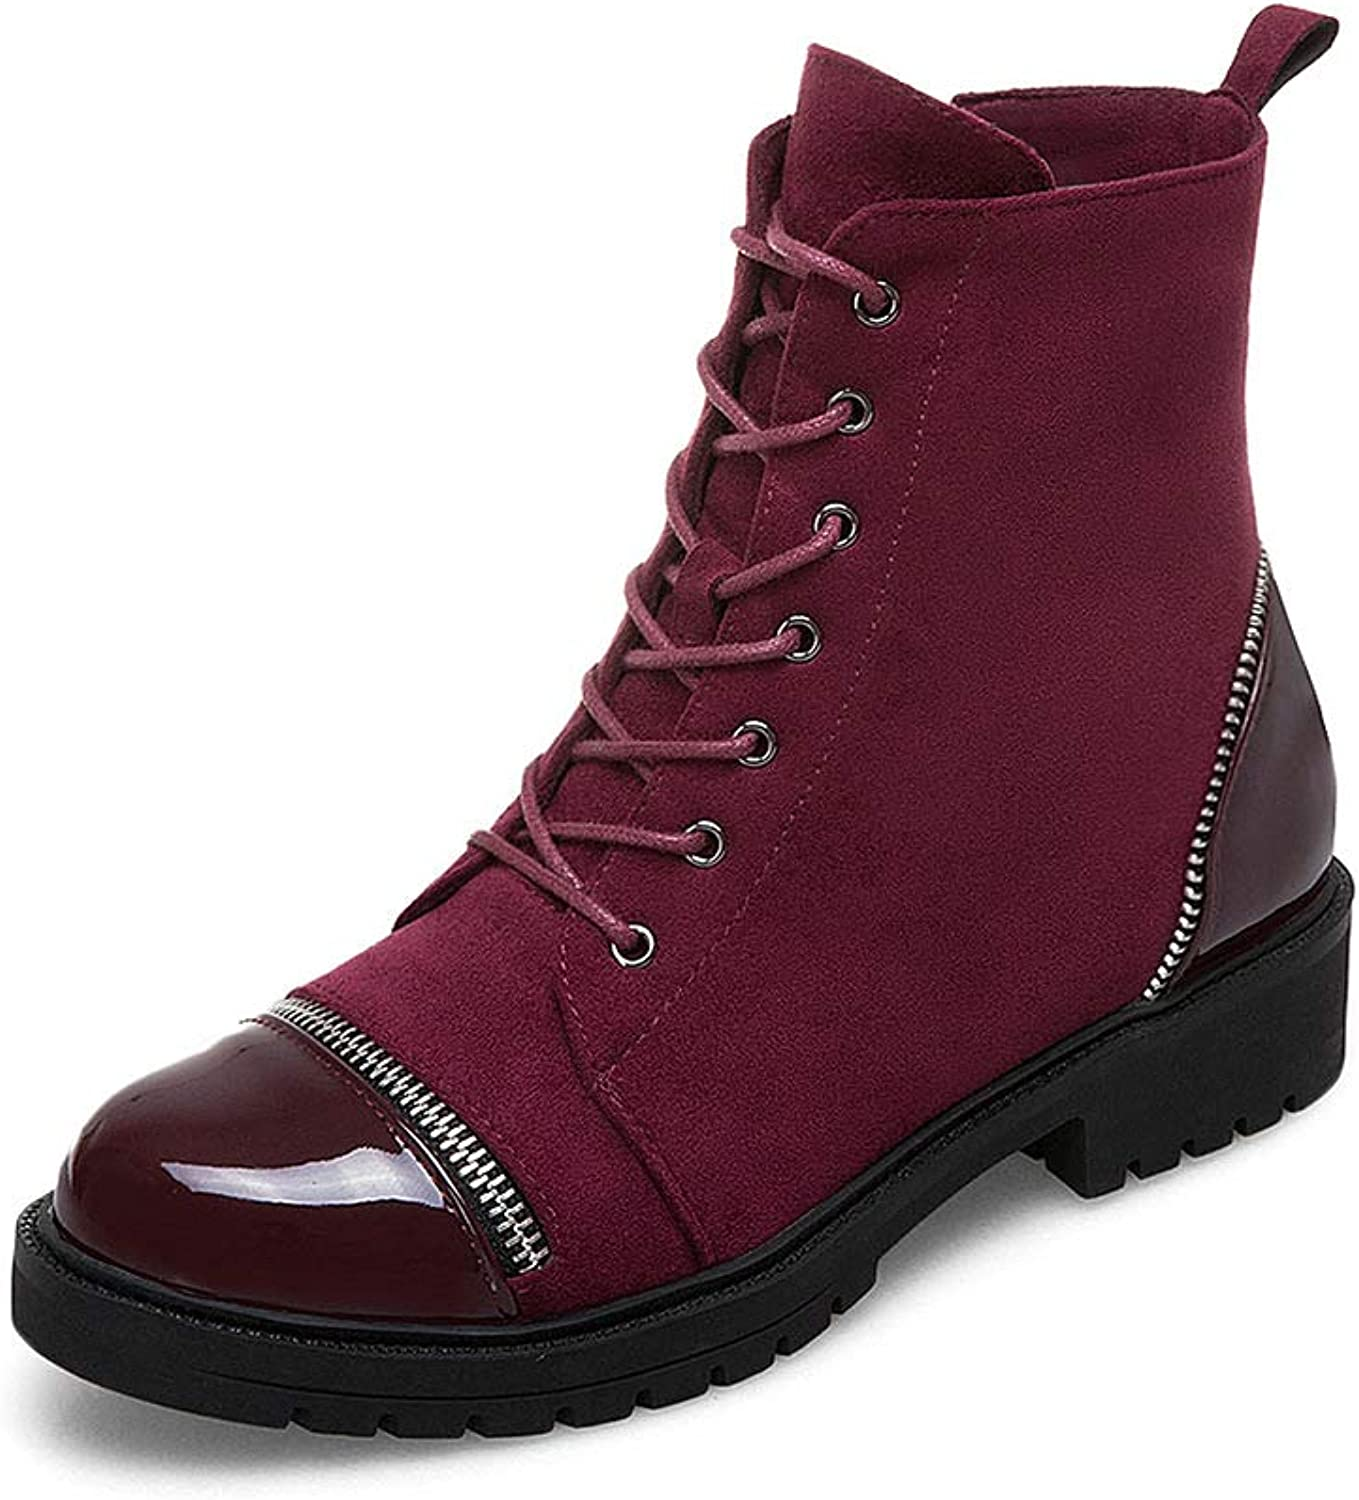 Wetkiss Latest Women Military Bootie Flat Combat Ankle Boots Casual Woman shoes Autumn Winter Boot Footwear